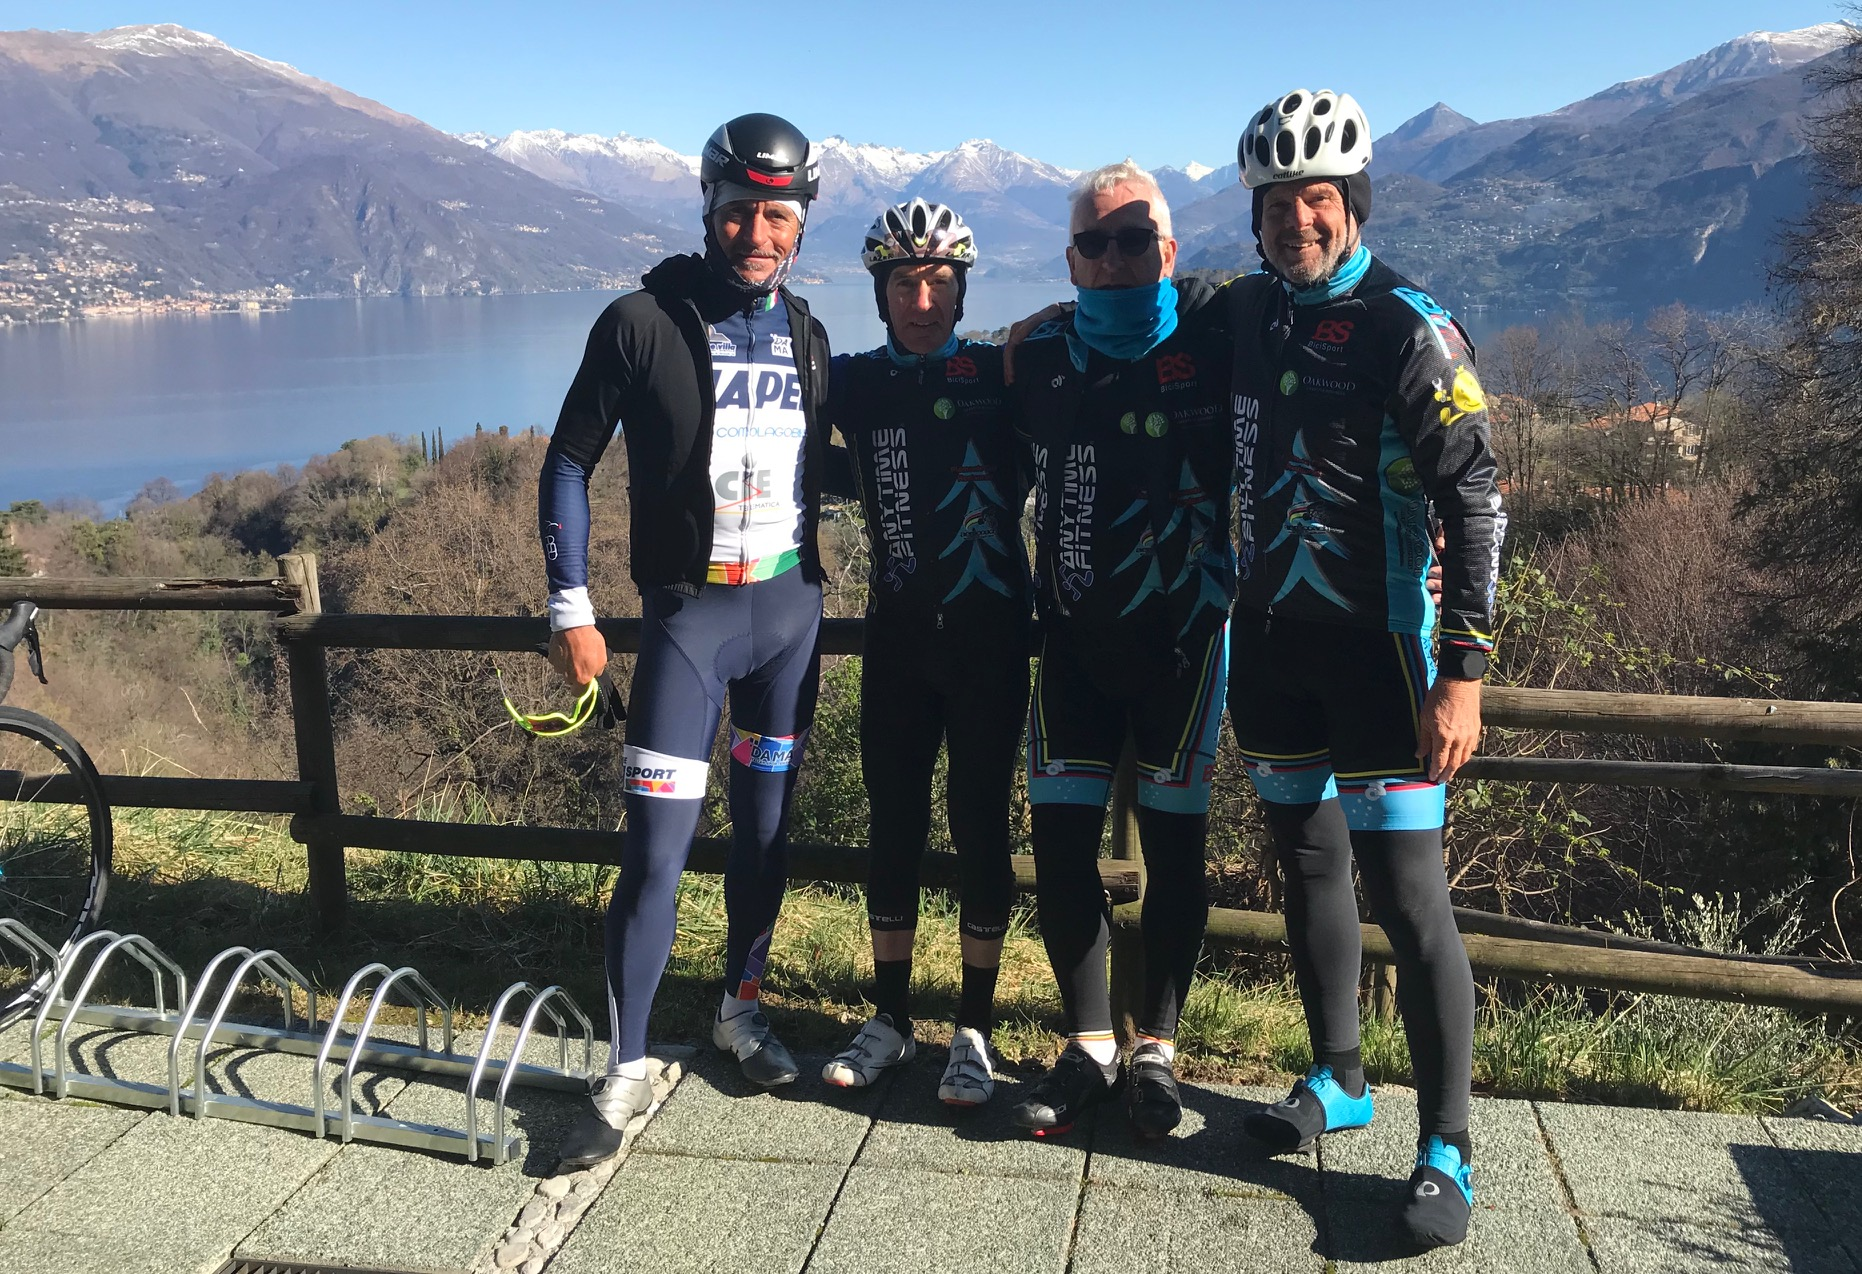 IL Perlo Hotel @ 20 Mar -  before the BiciSport ride start (L to R) - Alberto Elli, Mike Lawson, Mike O'Reilly & Marty Wright